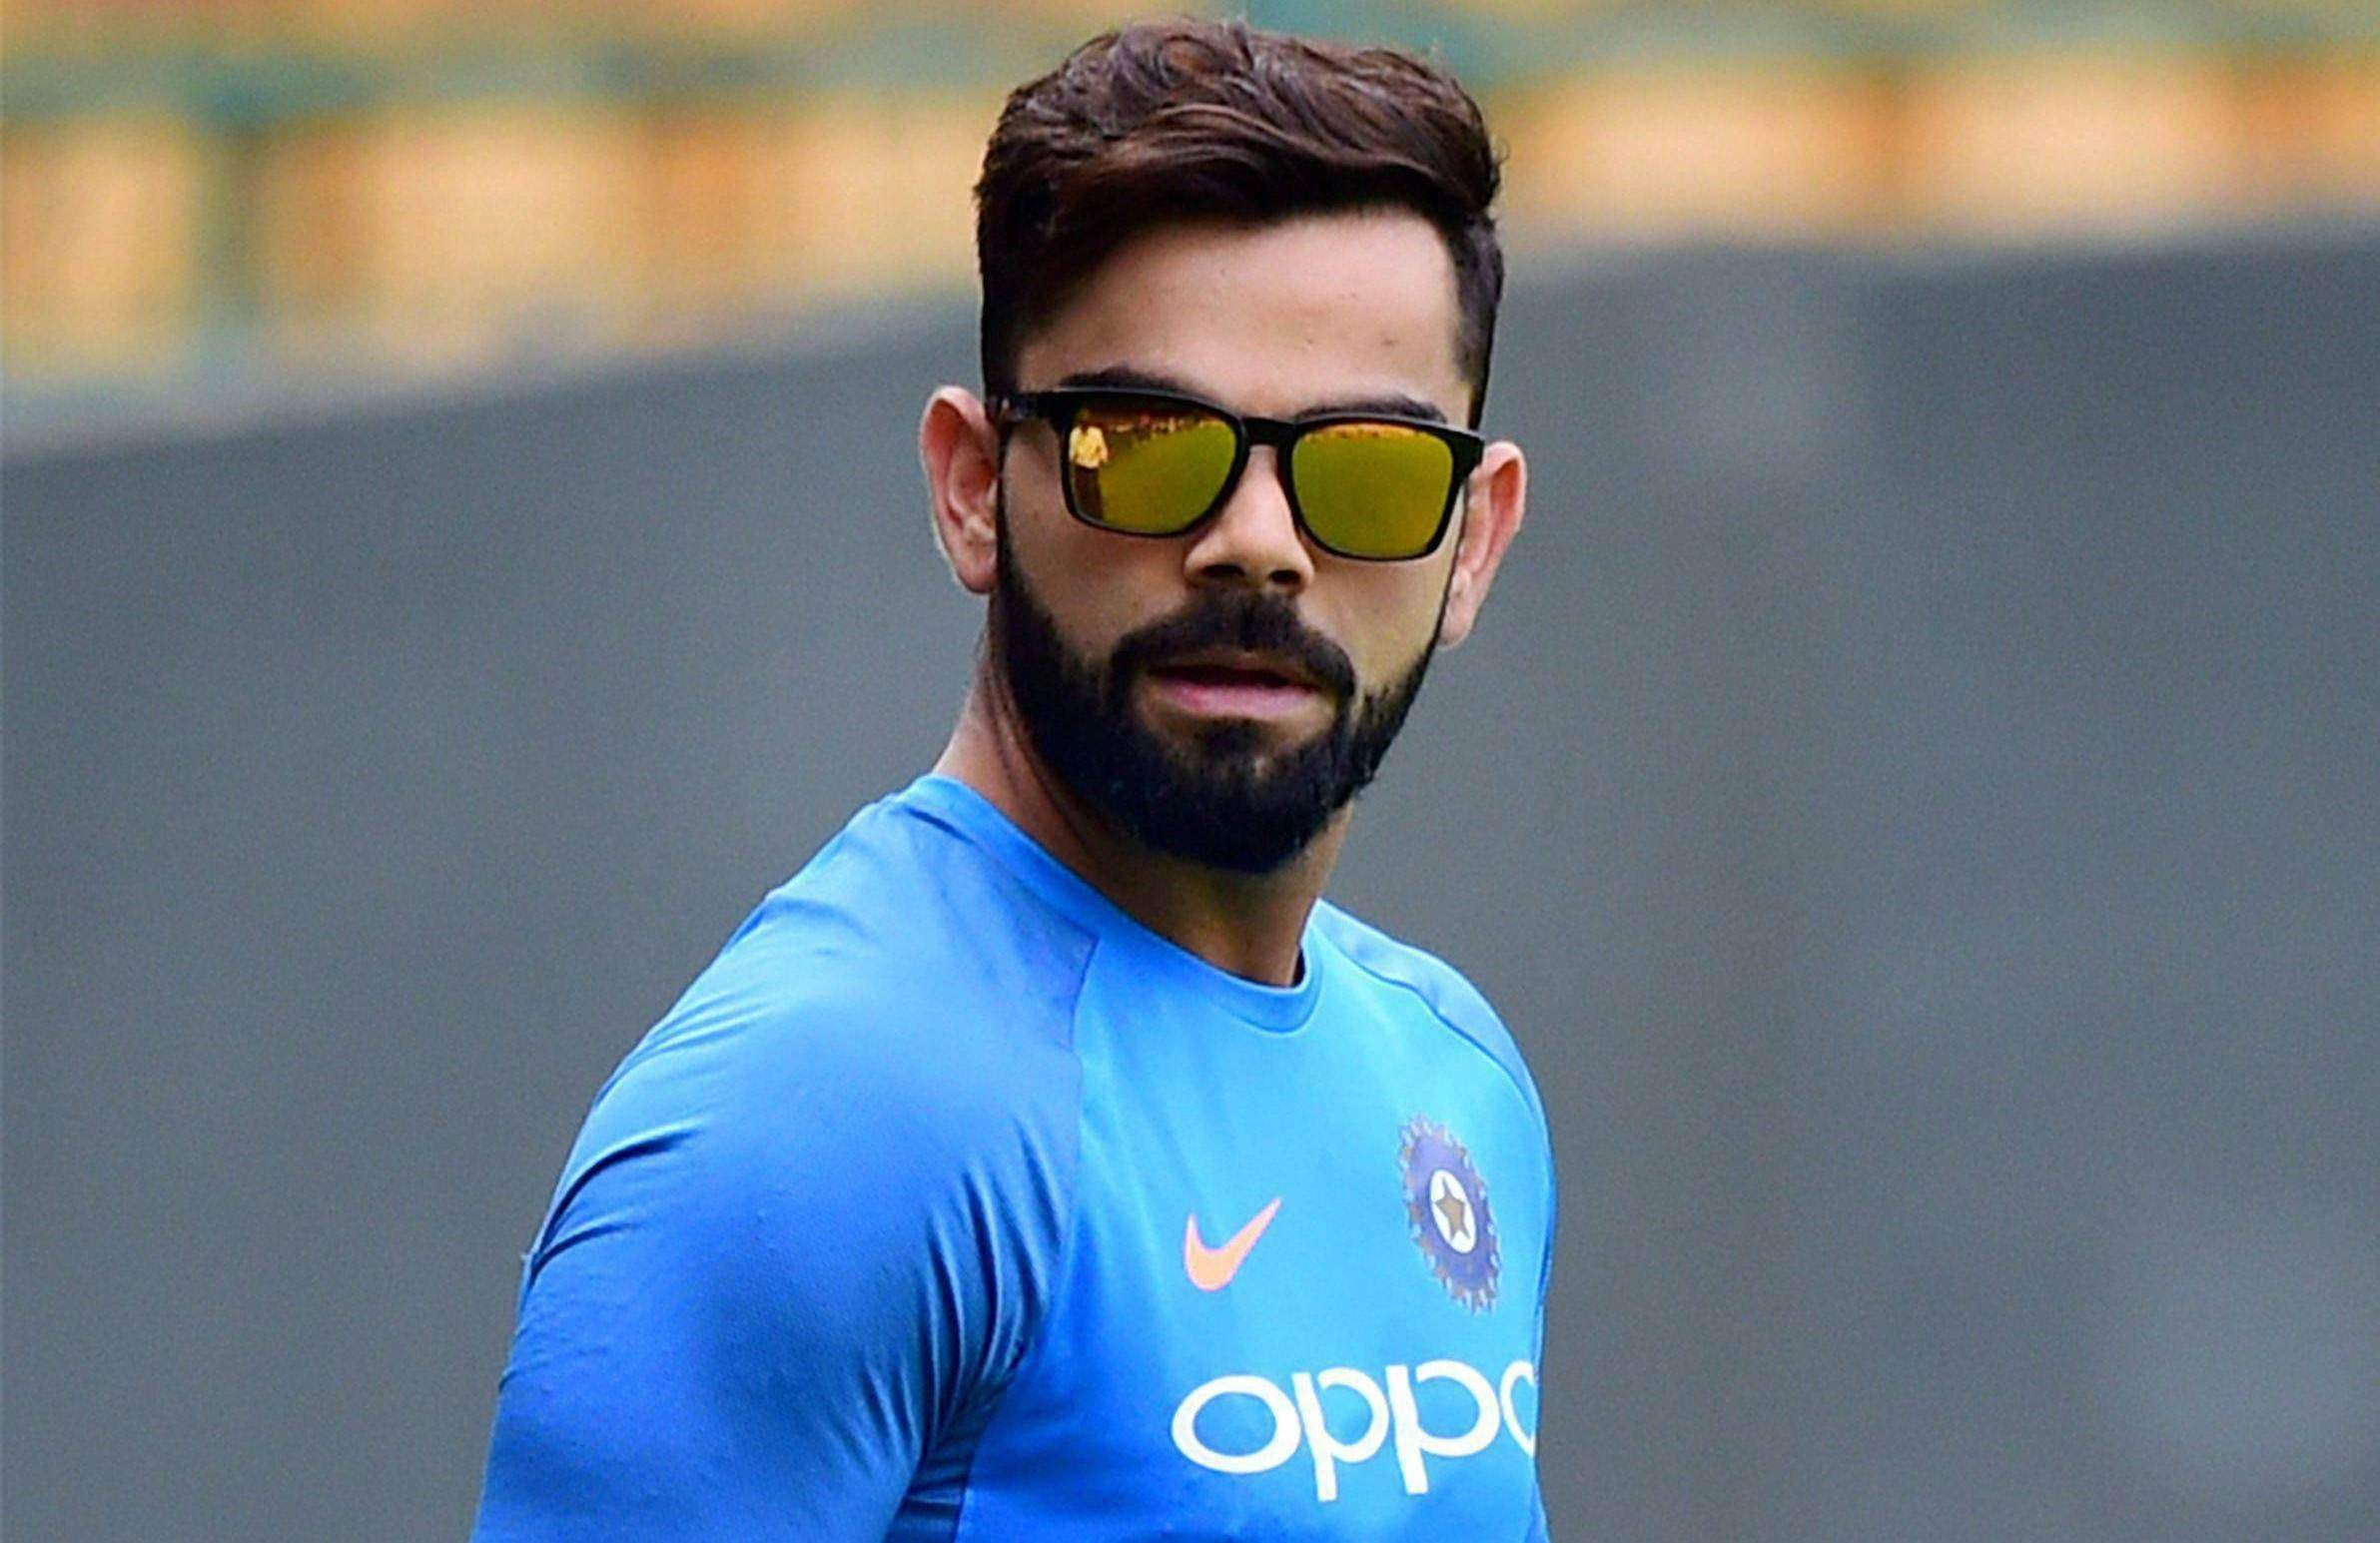 Virat Kohli Hd Wallpapers Sports Point Virat Kohli Cricket